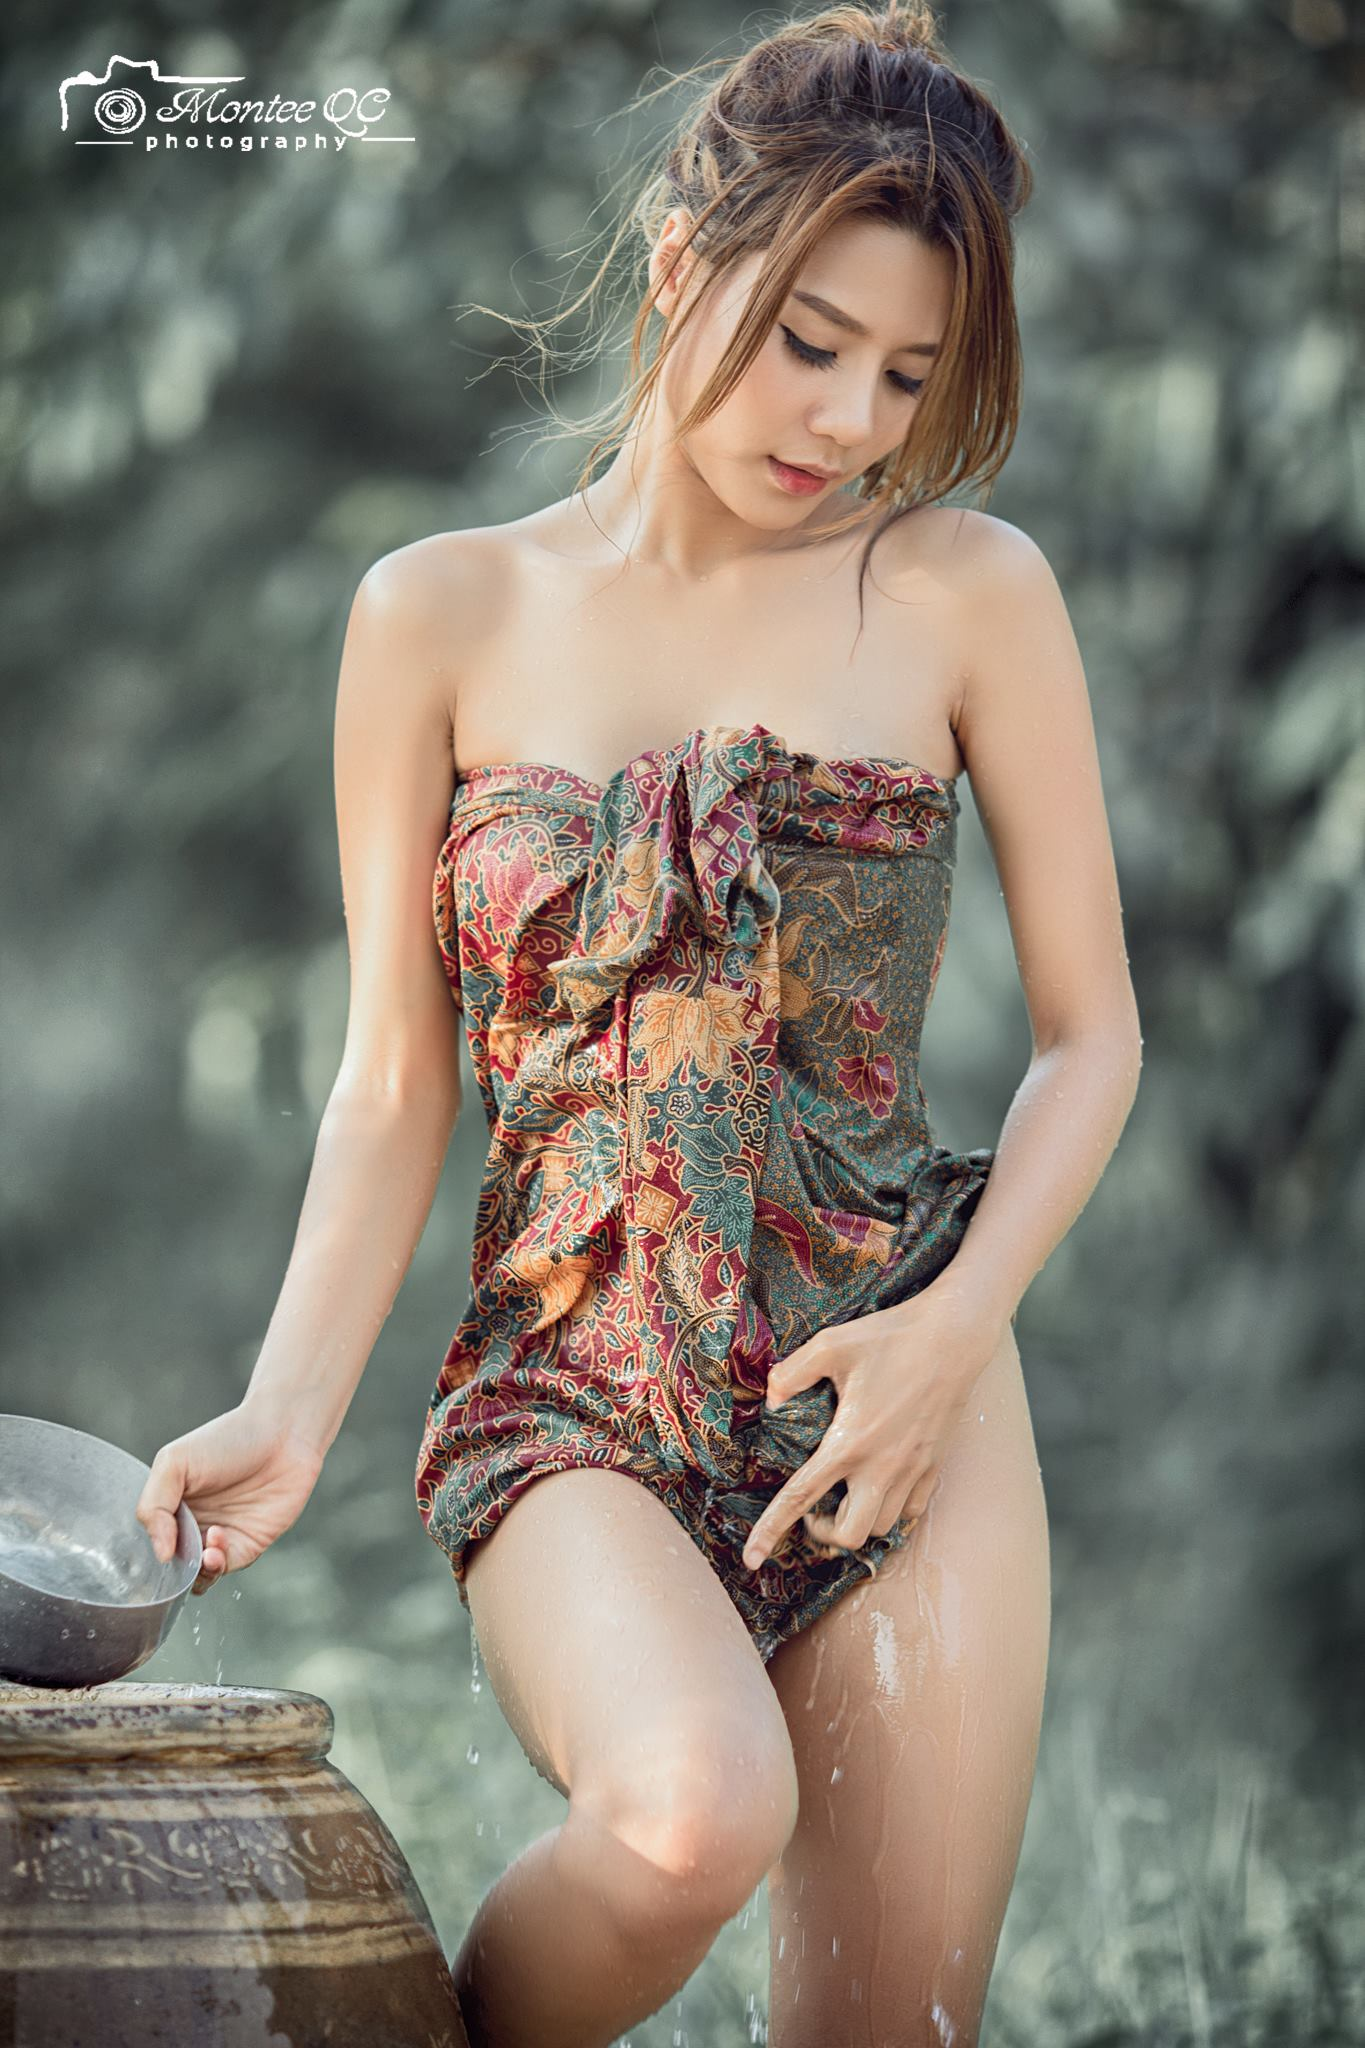 Shower by the River - Nong น้องนุ่น